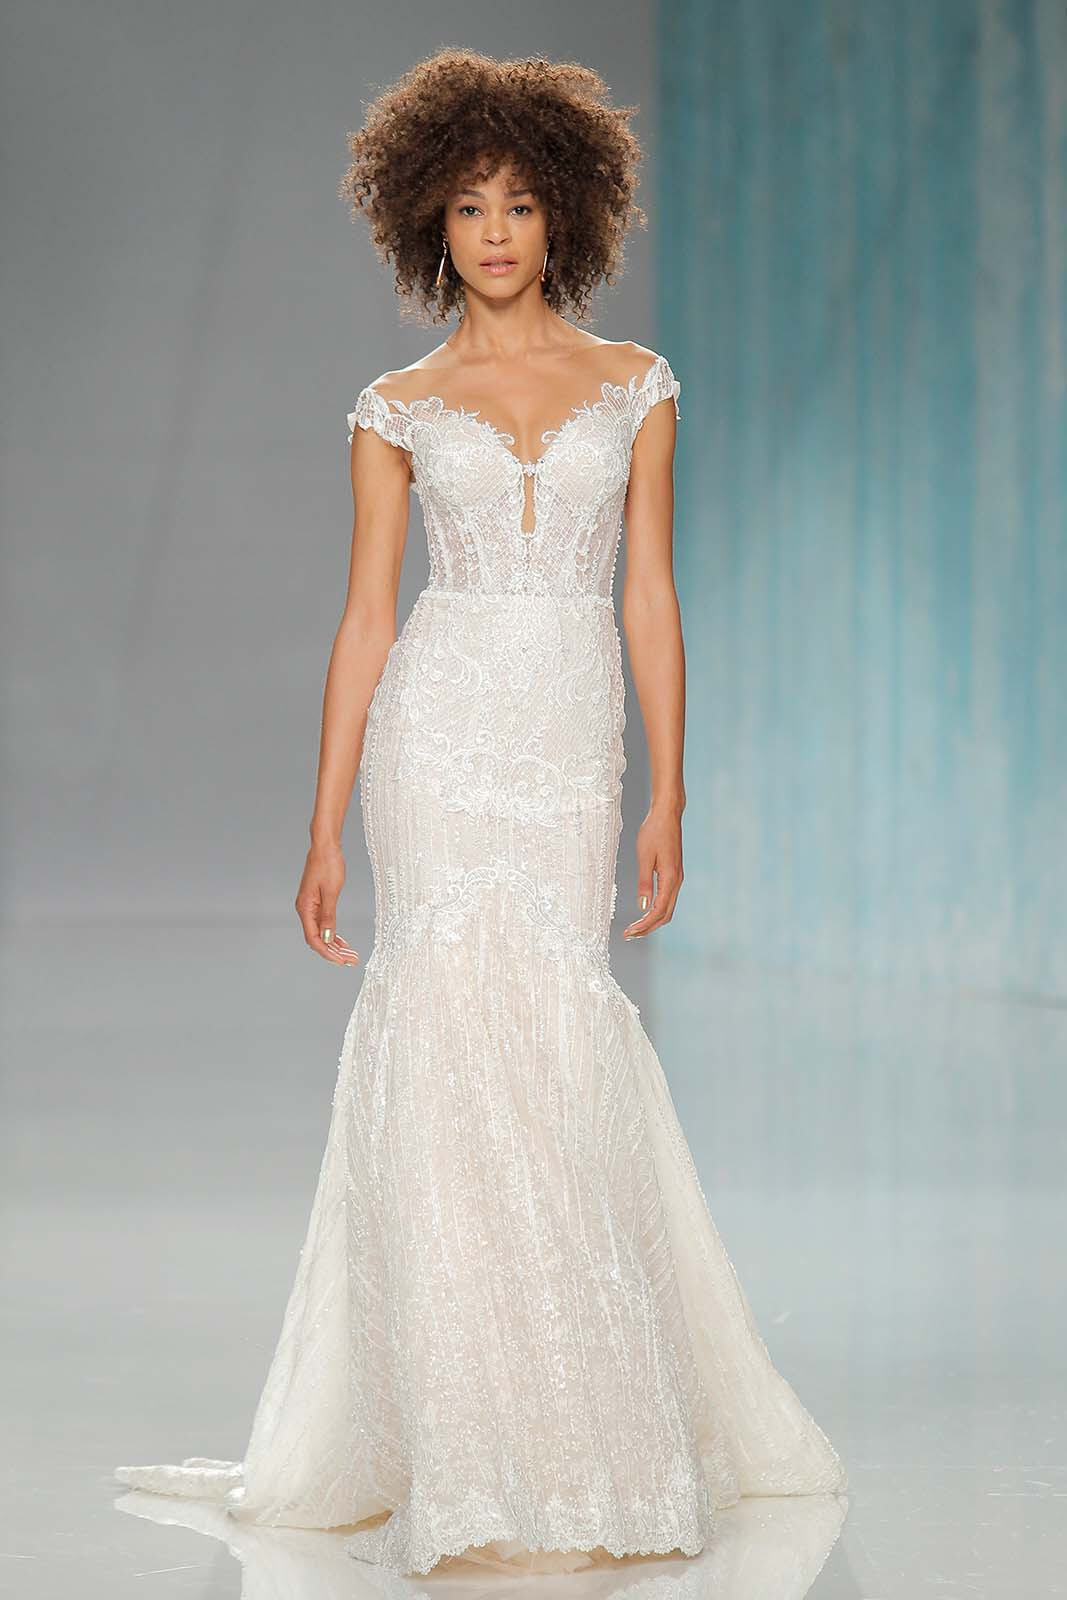 Fancy Vestido De Novia Estilo Romano Pictures - All Wedding Dresses ...